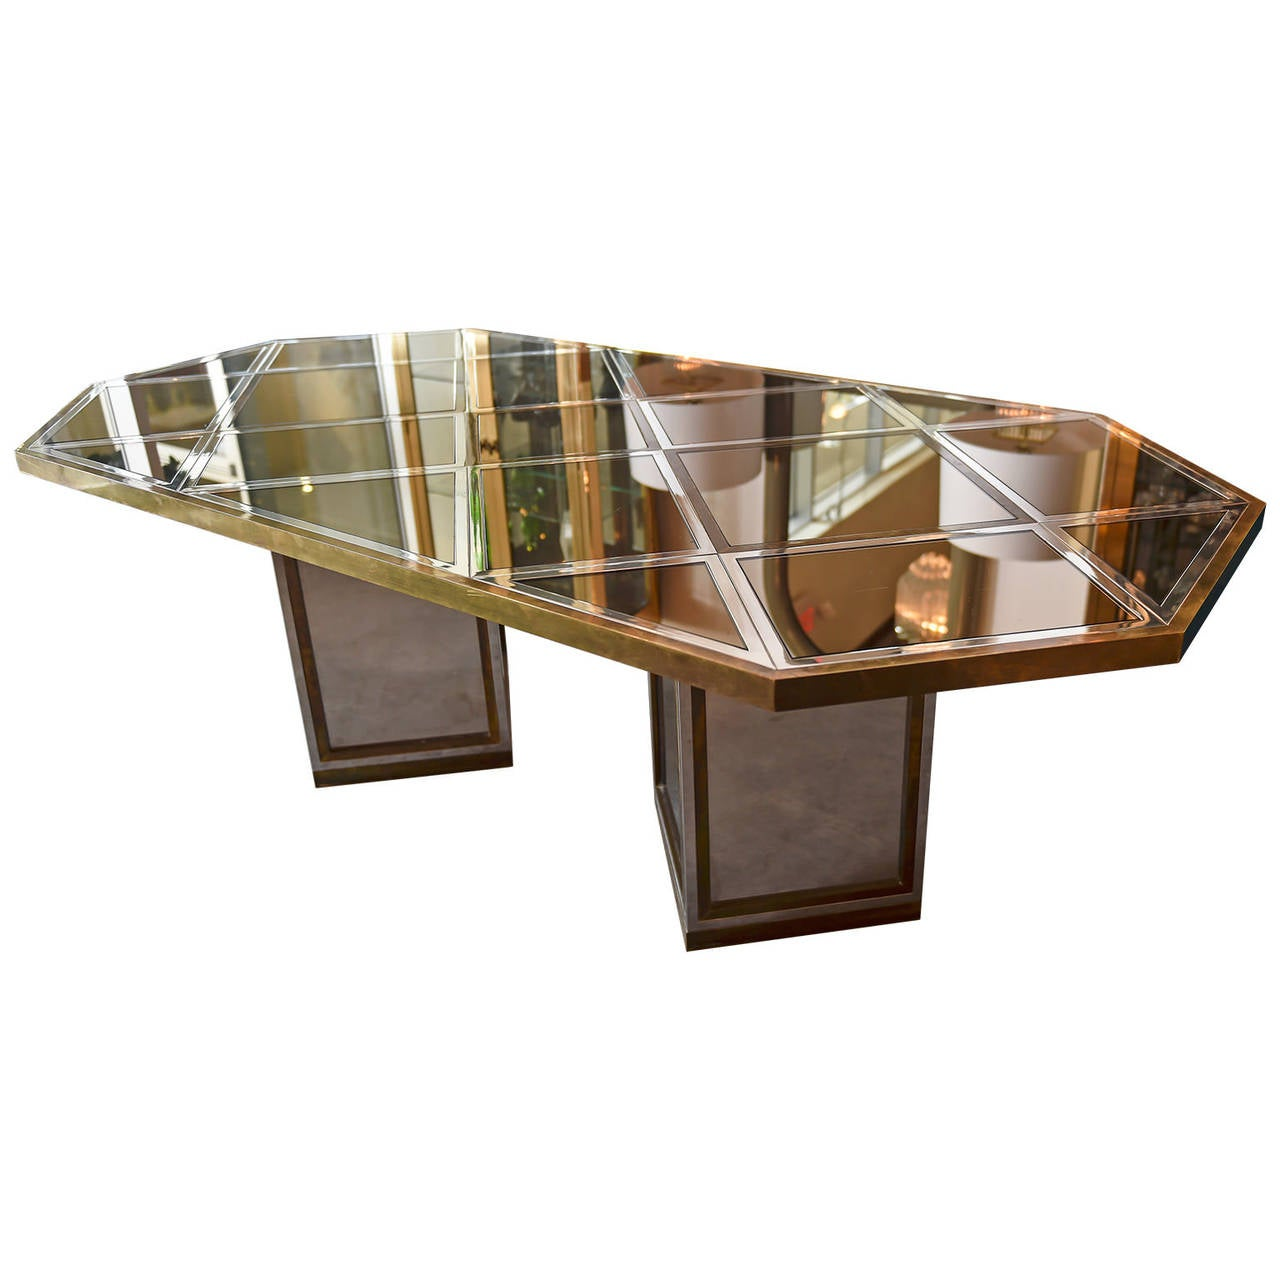 Late 20th Century Romeo Rega Brass, Chrome & Cut Glass Mirror Harlequin Style Dining Table / Desk For Sale